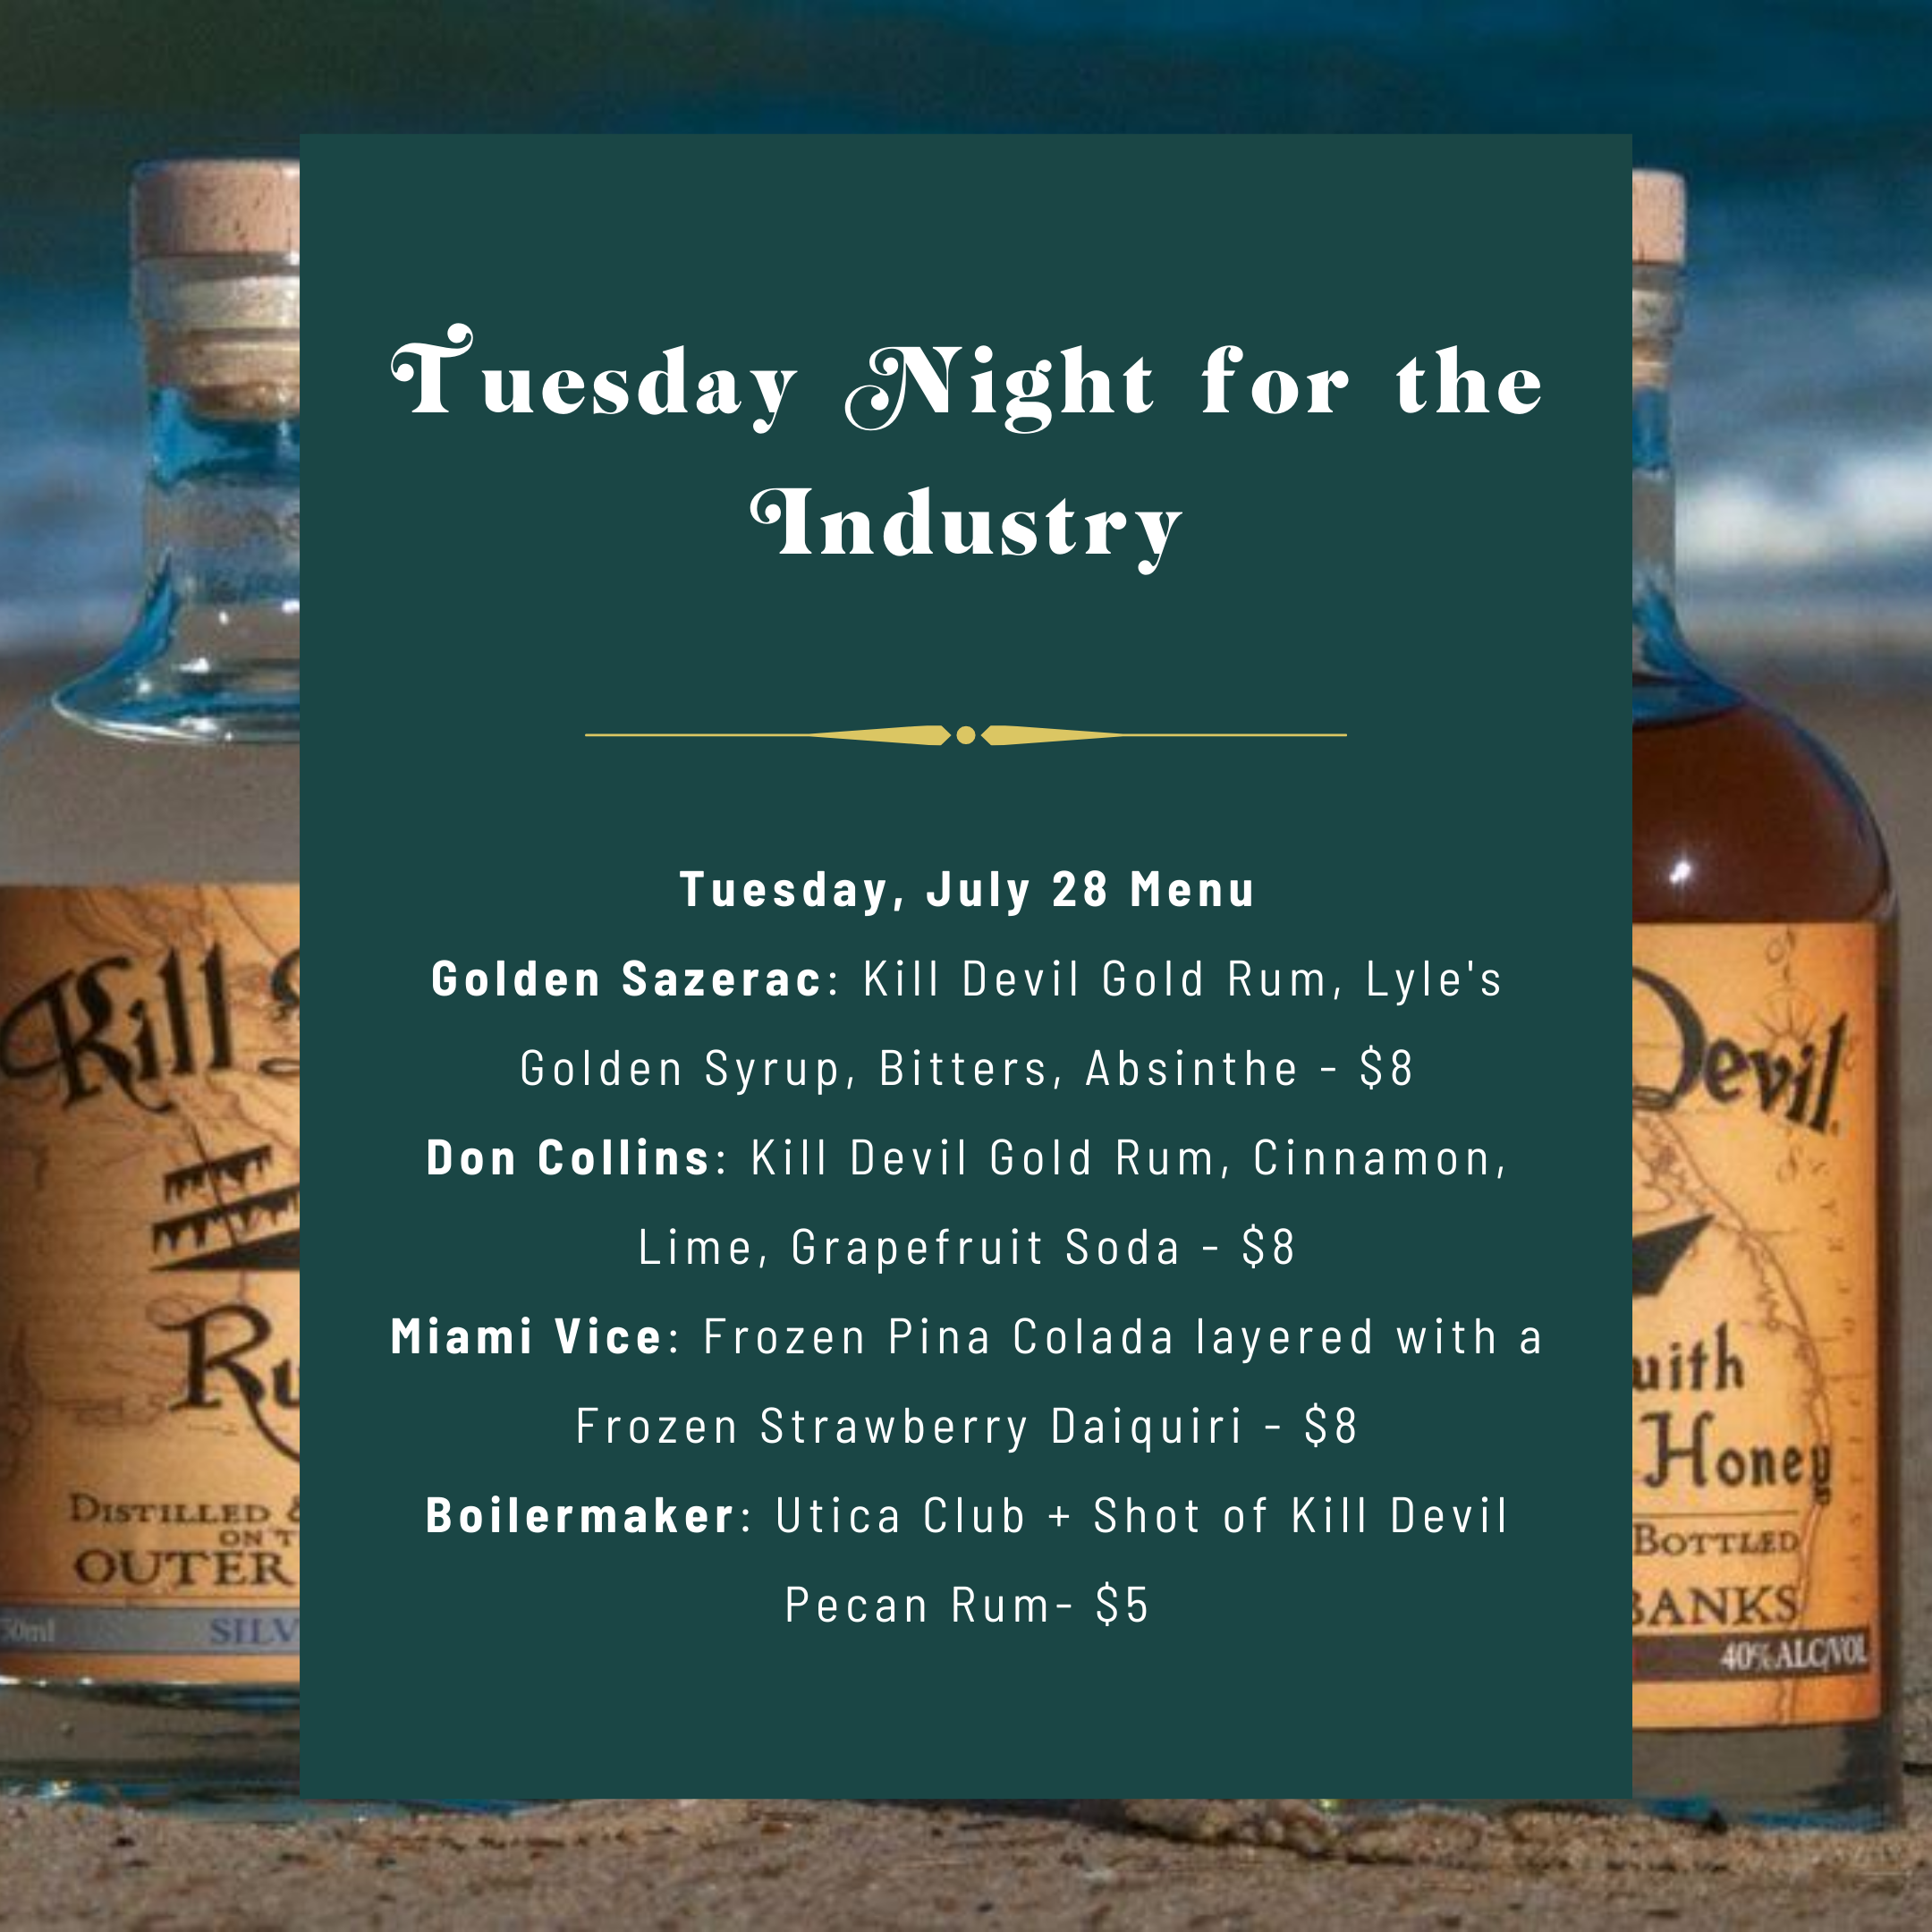 Killjoy Cocktail Raleigh - Tuesday Night for the Industry - July 28 2020